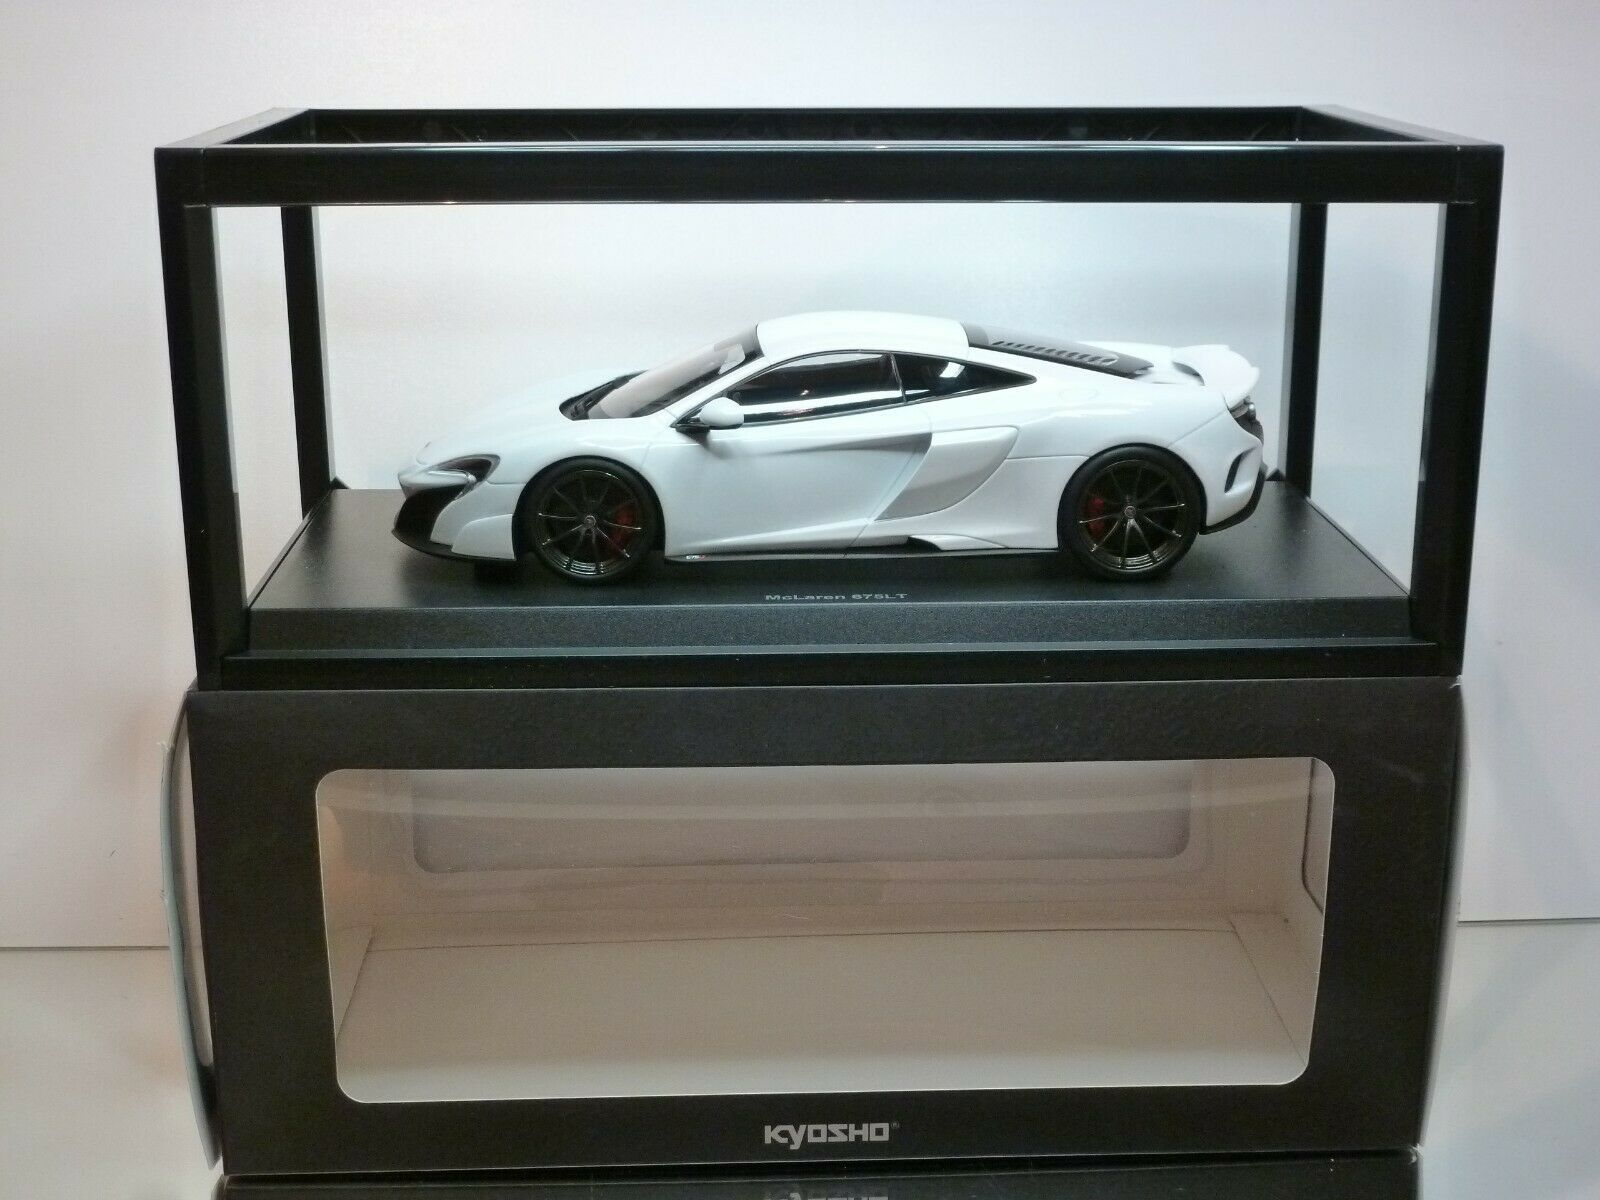 KYOSHO C09541W McLAREN 675LT - bianca METALLIC 1 18 - EXCELLENT IN BOX